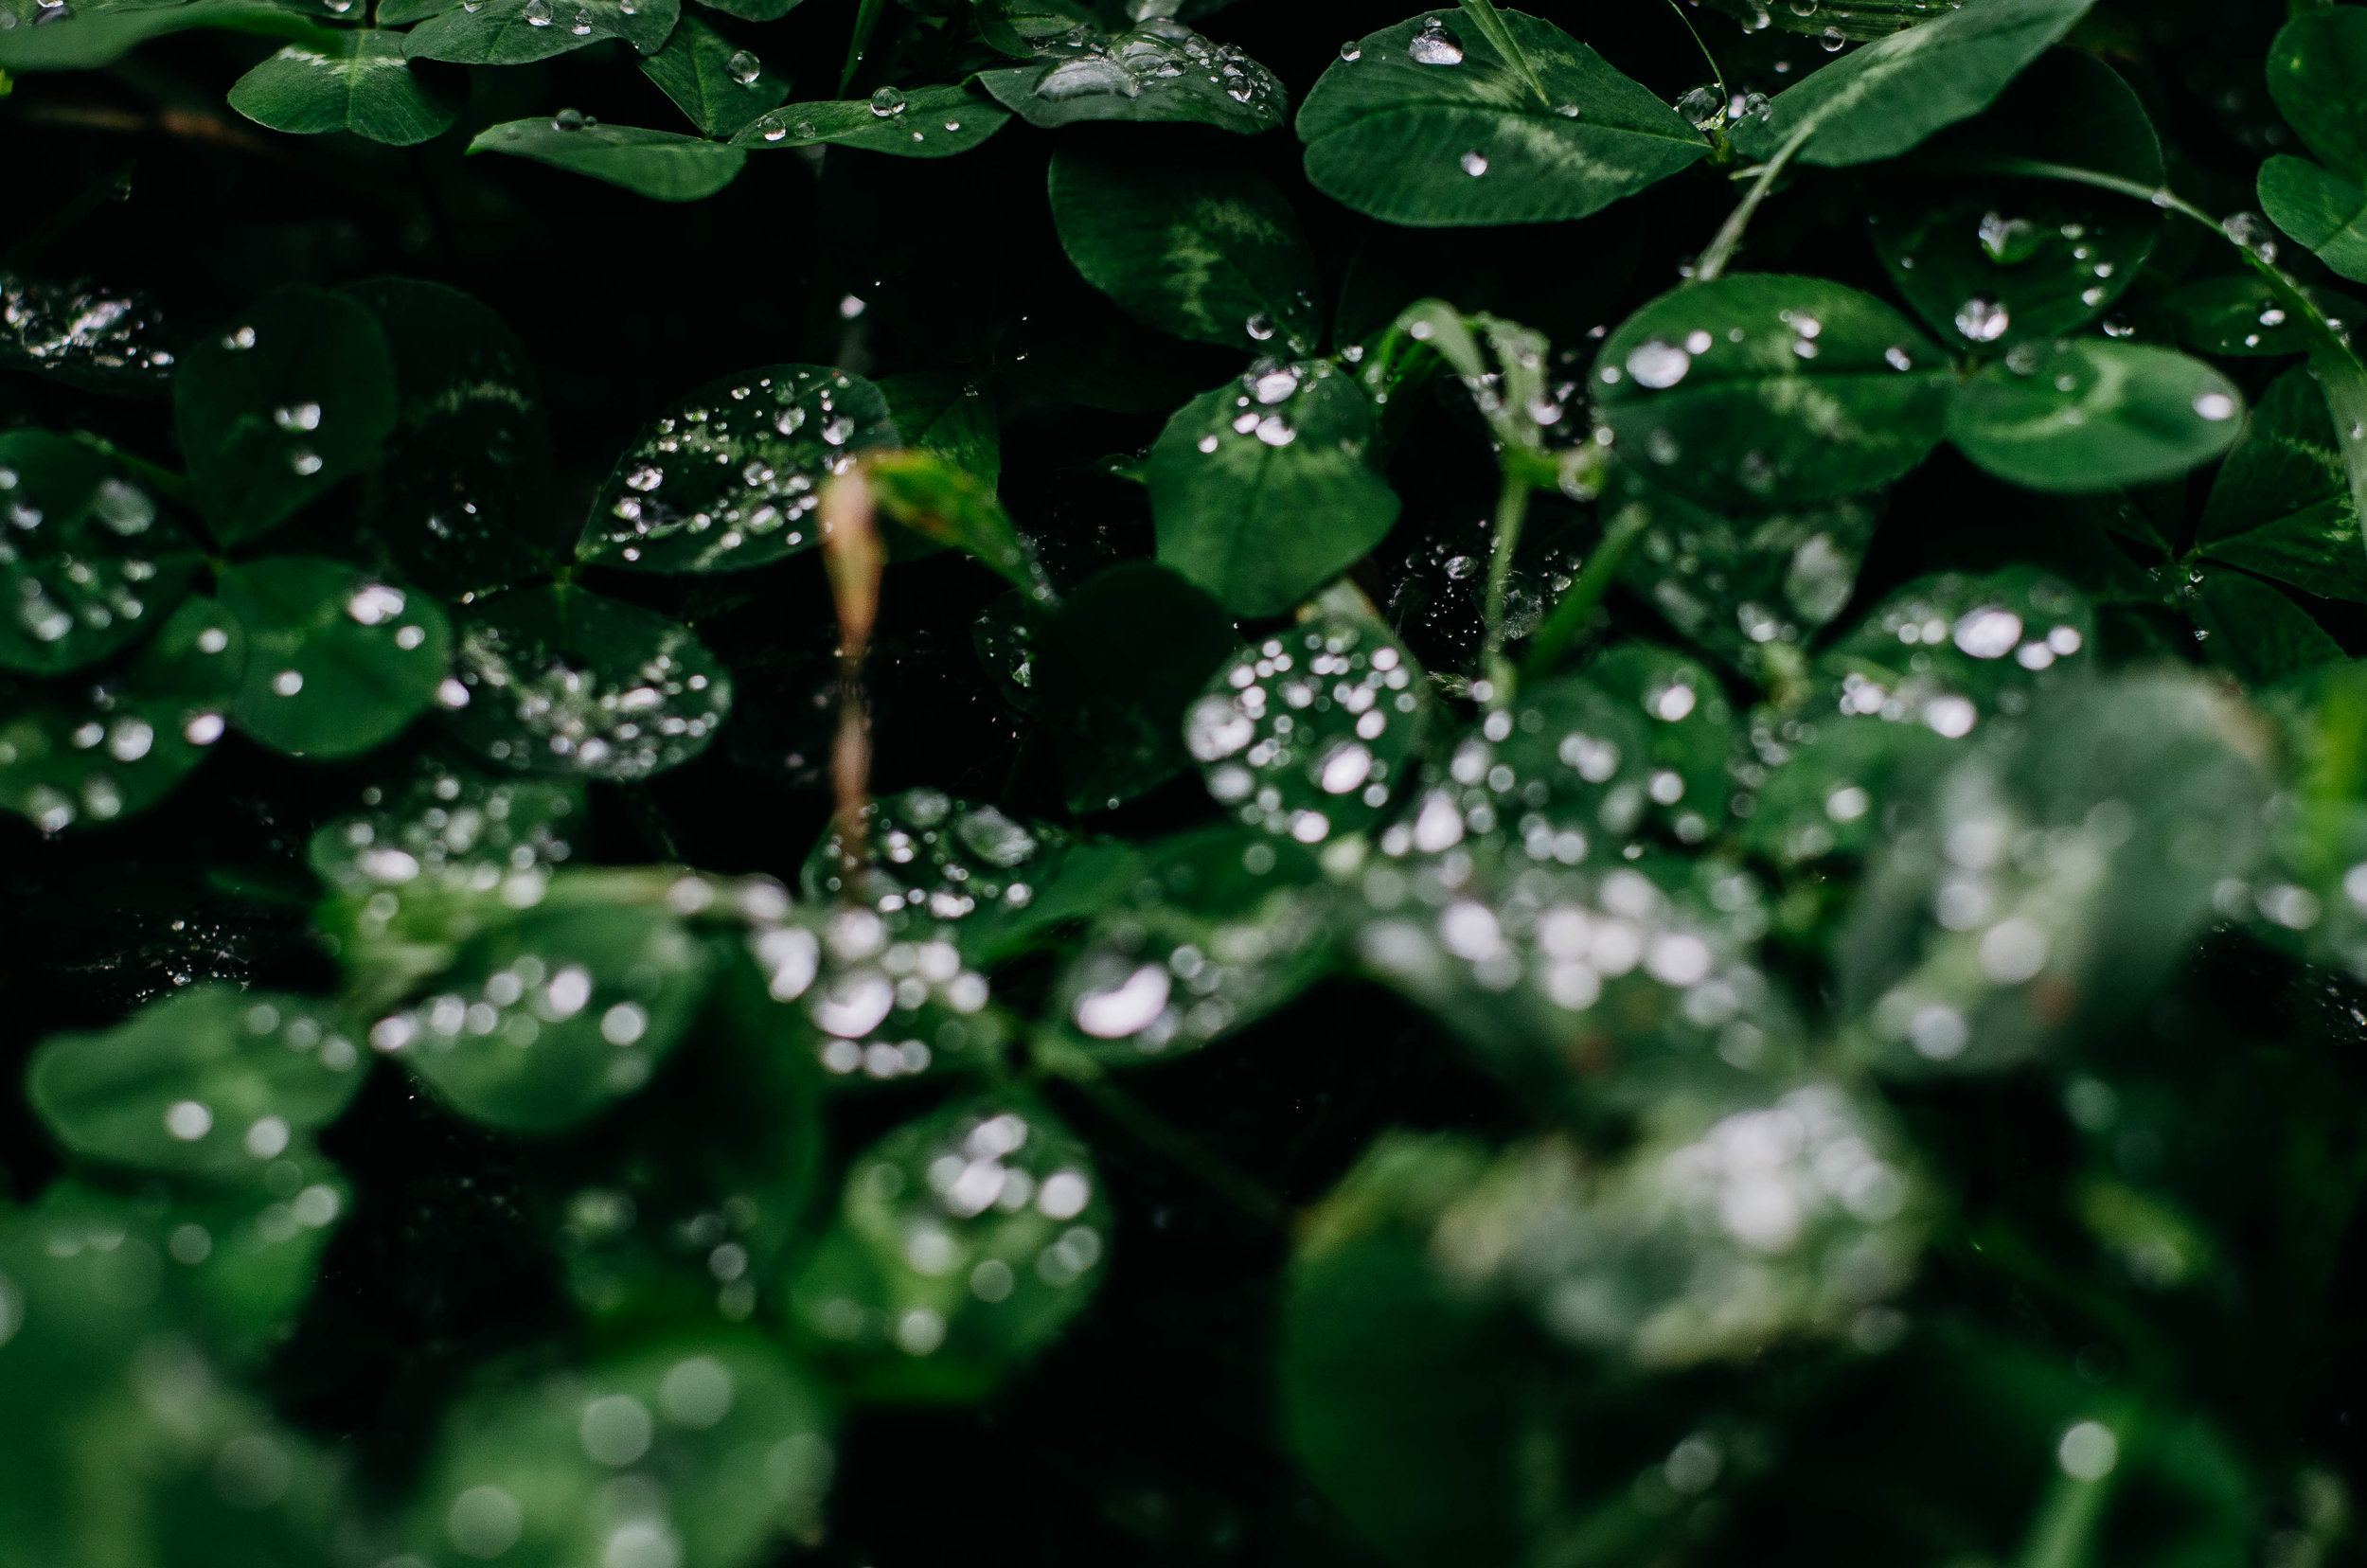 samantha whitford photography atx phototgrapher texas nature water droplets (15).jpg